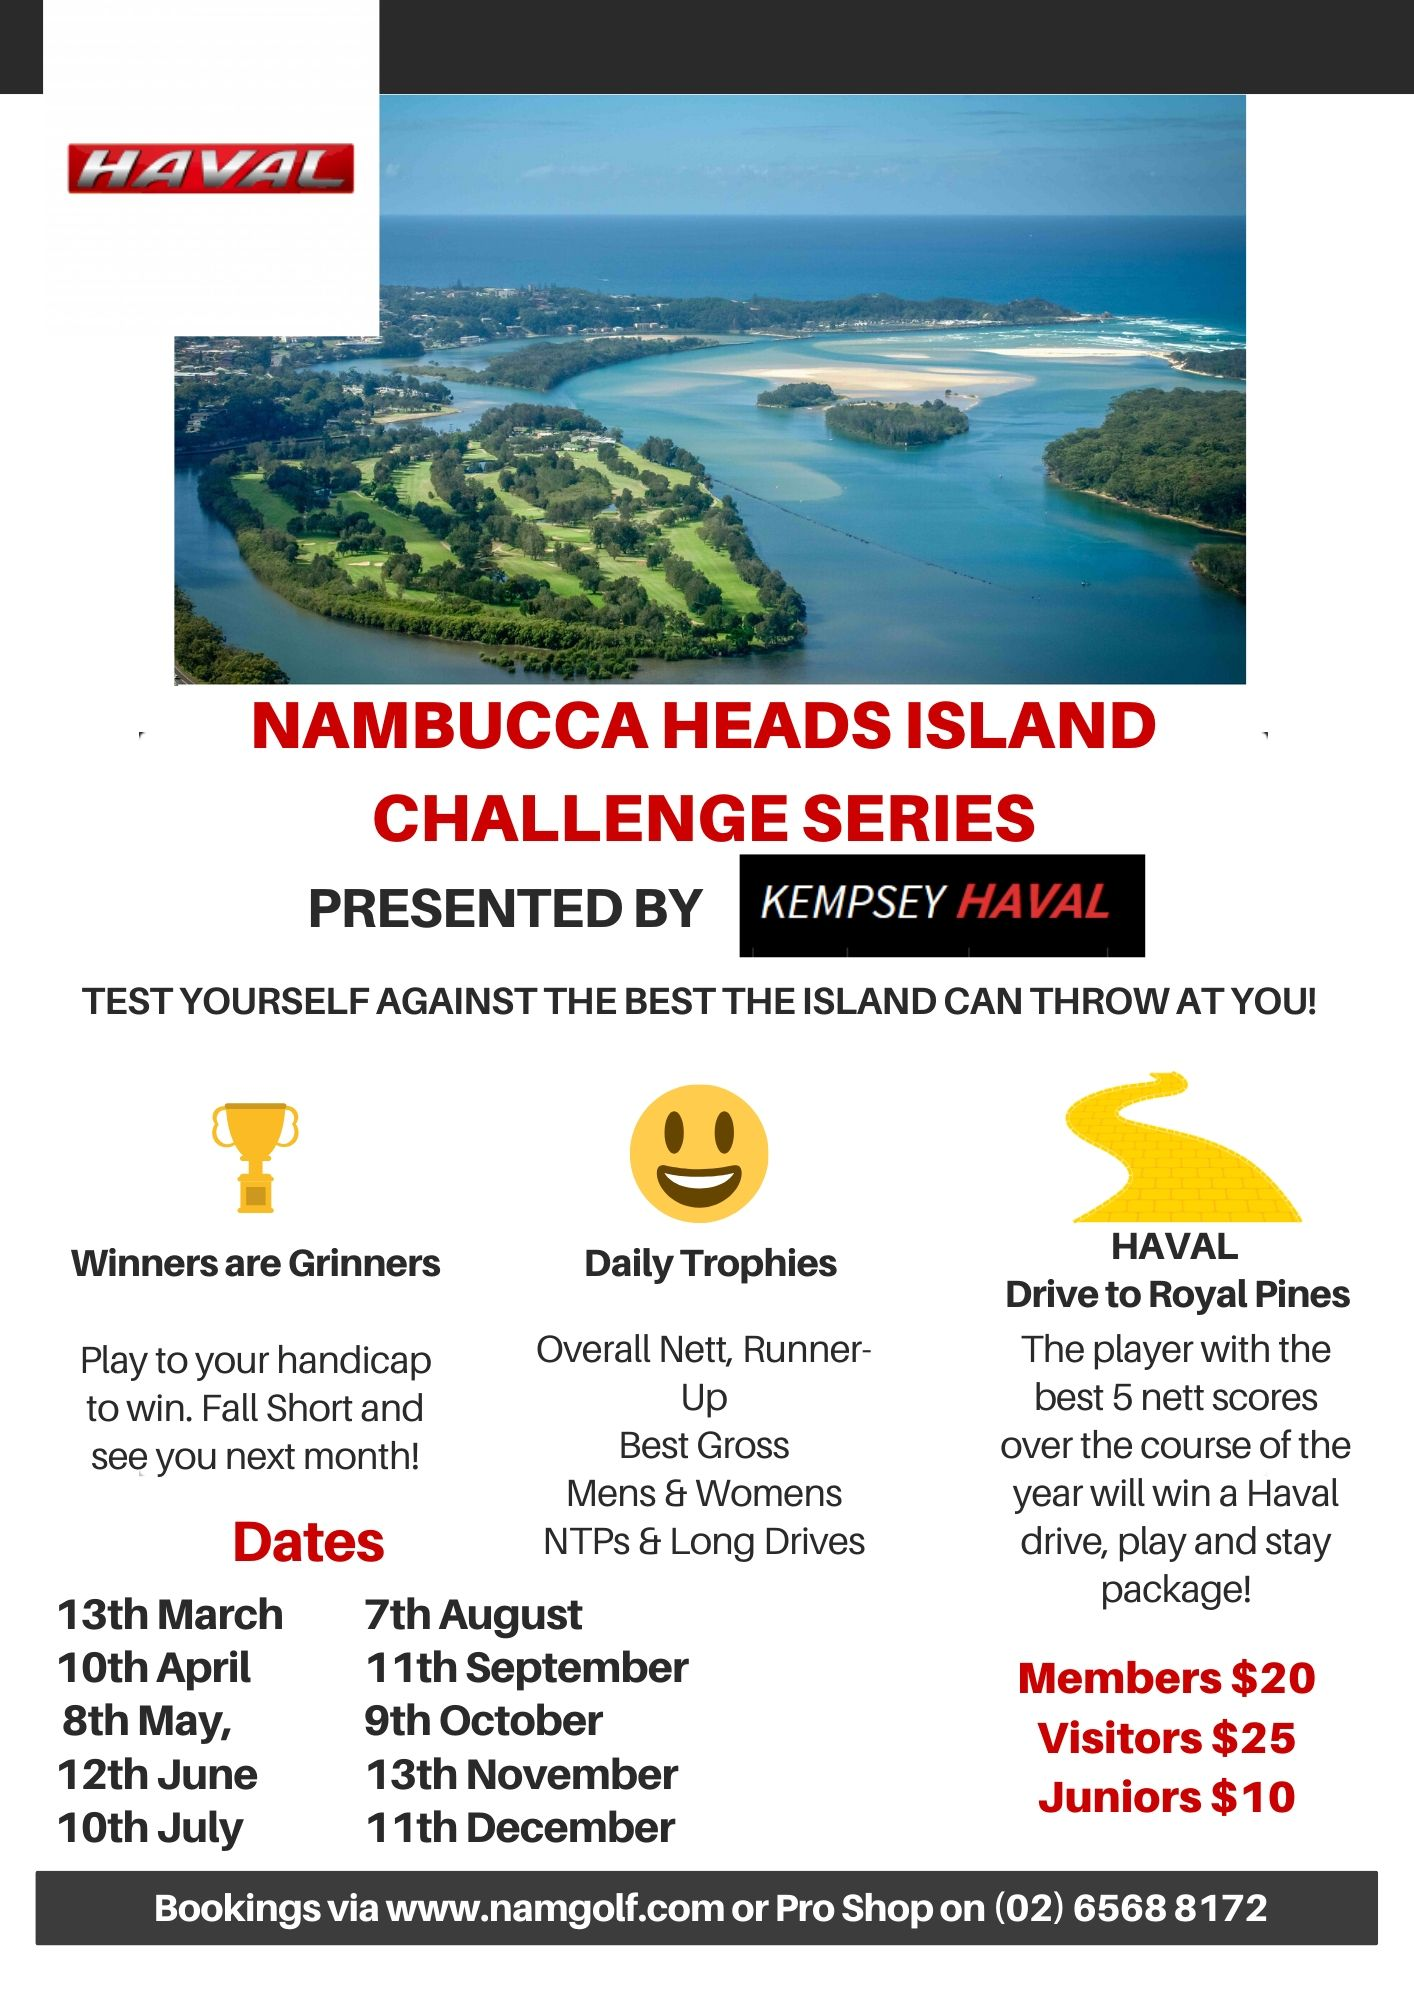 Nambucca Heads Island Golf Club Challenge Series